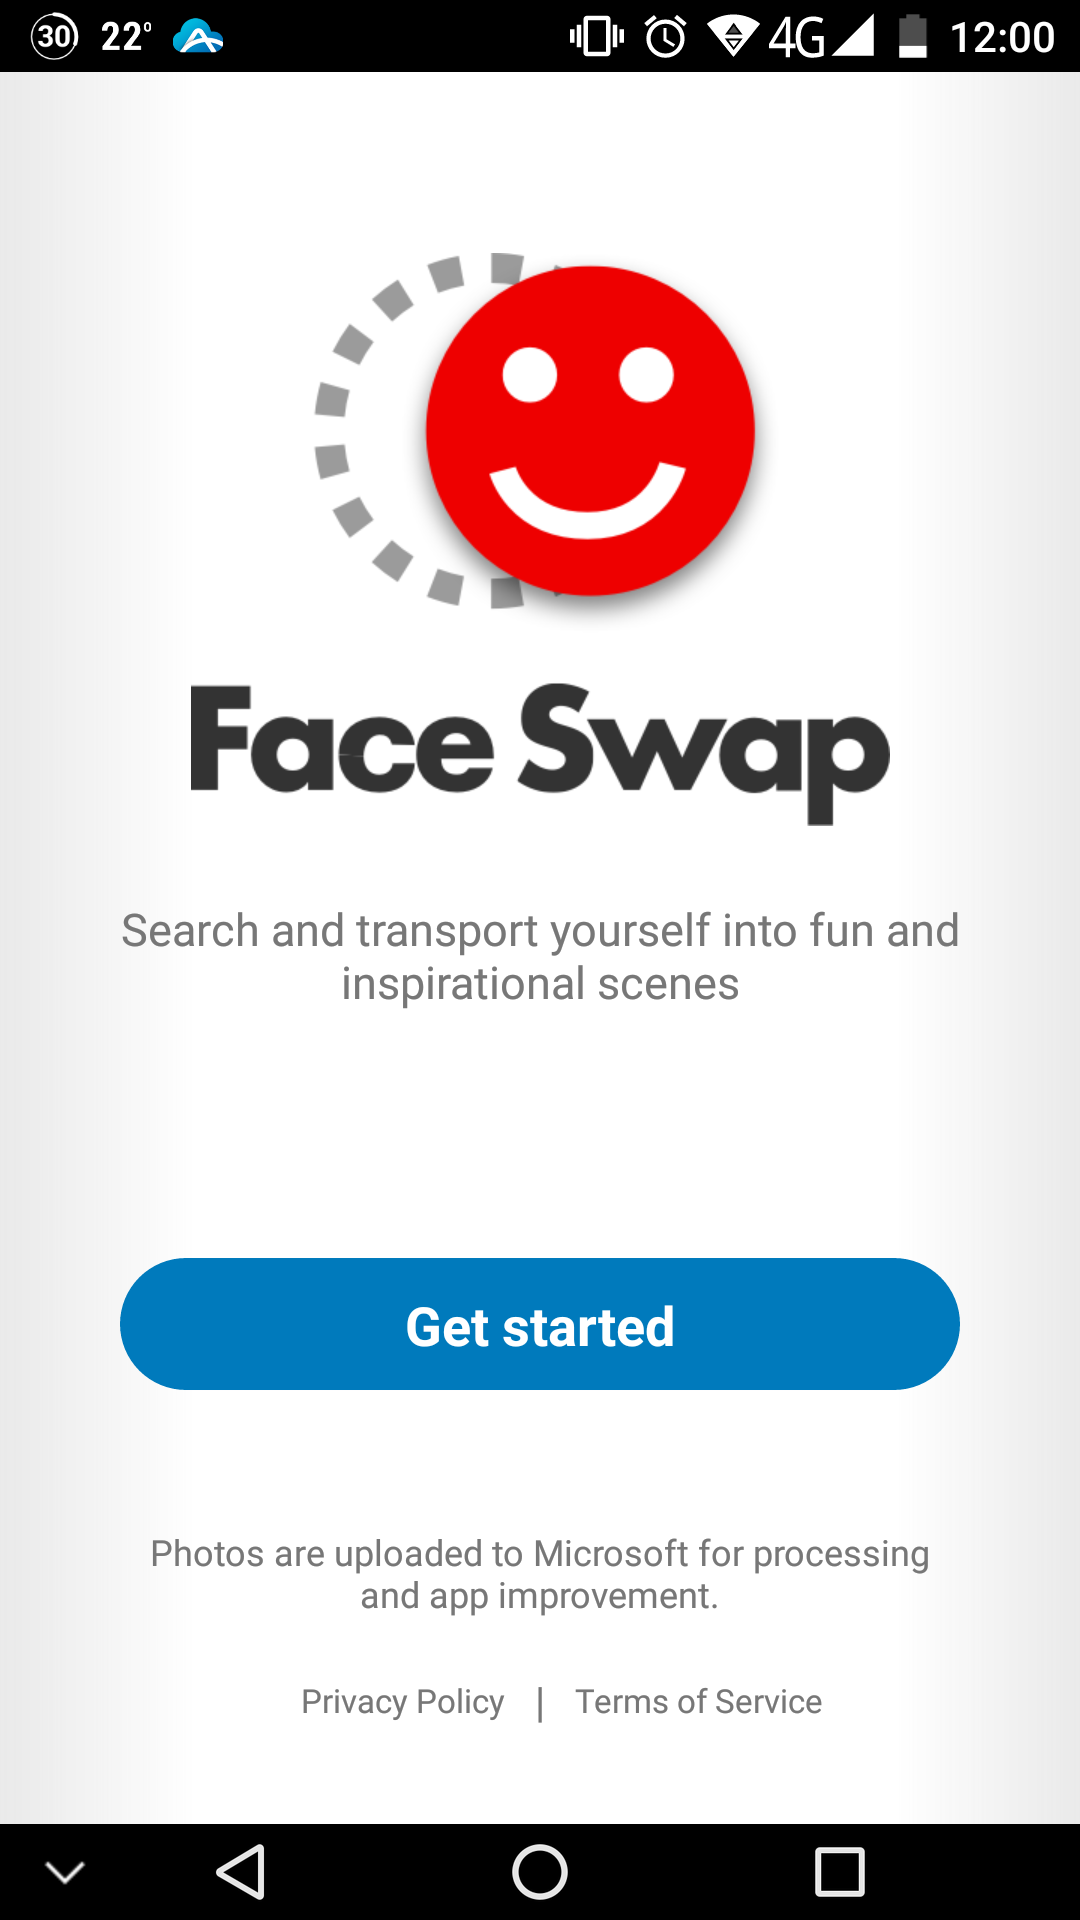 Microsoft Launches Face Swap App for Android, iPhone Version on Its Way